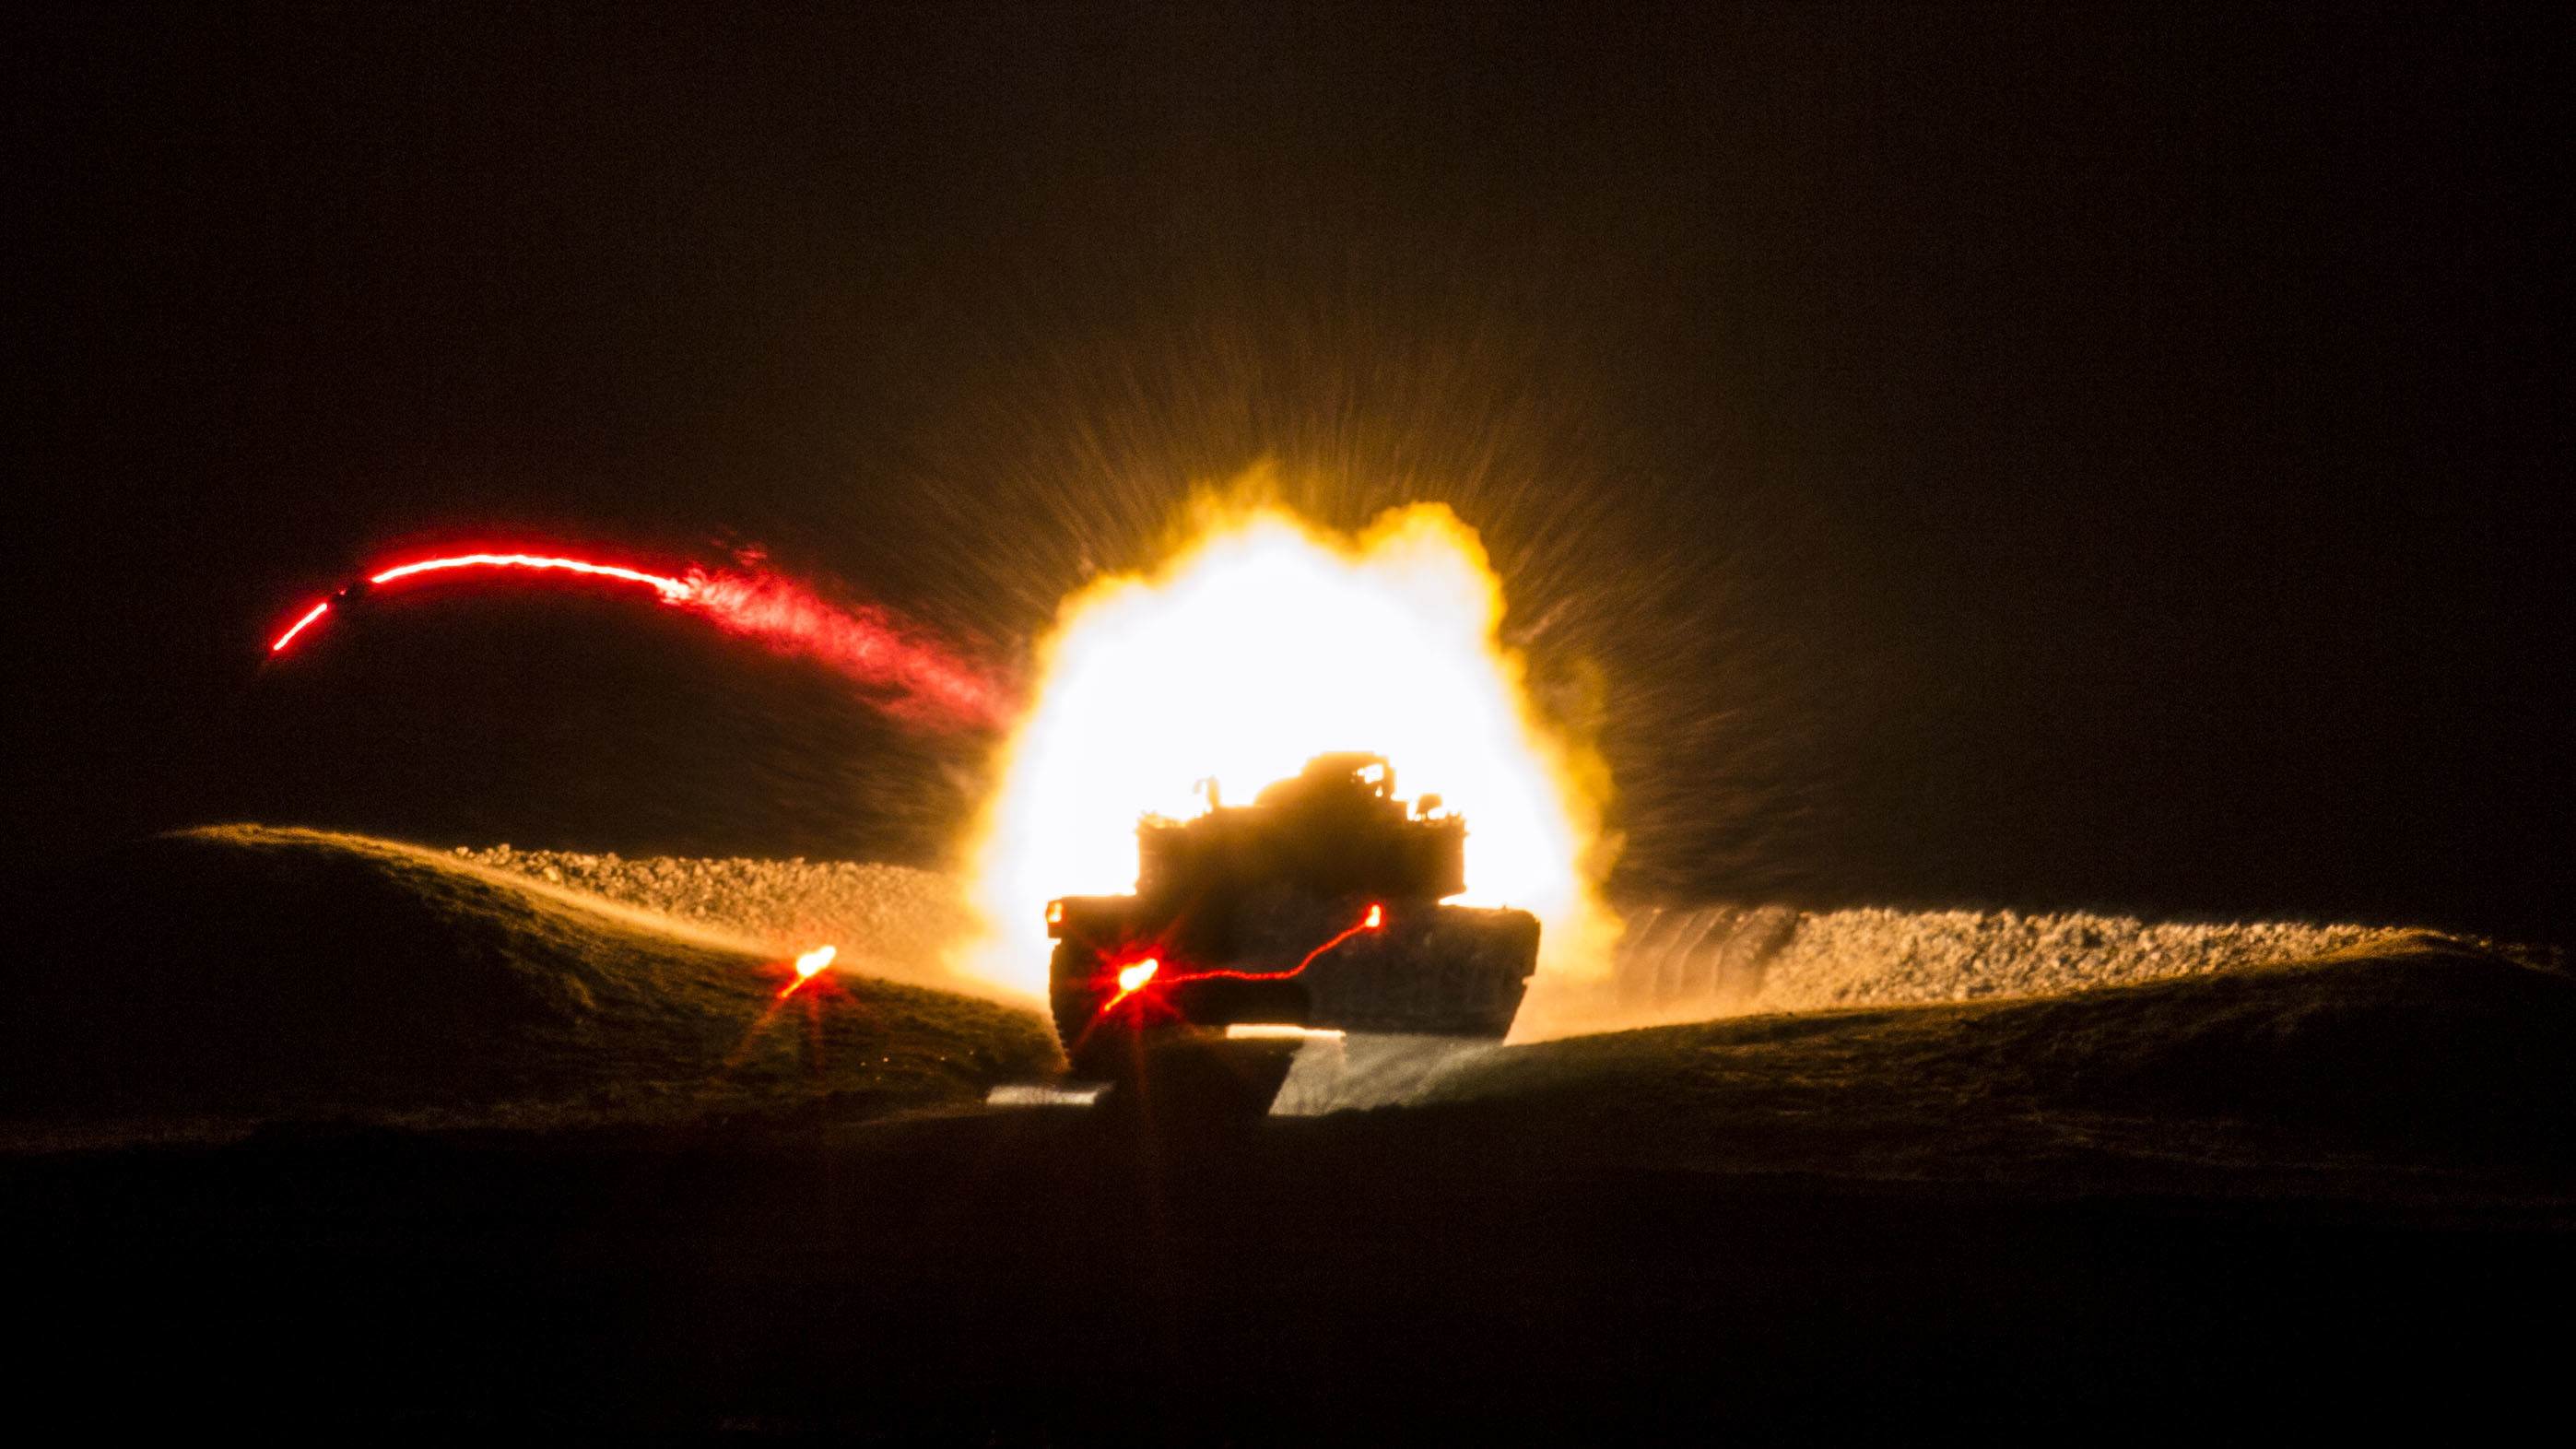 U.S. Marines with Company B, 2nd Tank Battalion, fire a 120mm smoothbore main gun from an M1A1 Abrams Main Battle Tank during a live-fire exercise at Range SR-10, Camp Lejeune, N.C., Jan. 28, 2016. 2nd Tank Battalion conducted marksmanship qualifications during a month-long field exercise. (U.S. Marine Corps photo by Sgt. Christopher Q. Stone, MCIEAST Combat Camera/Released)